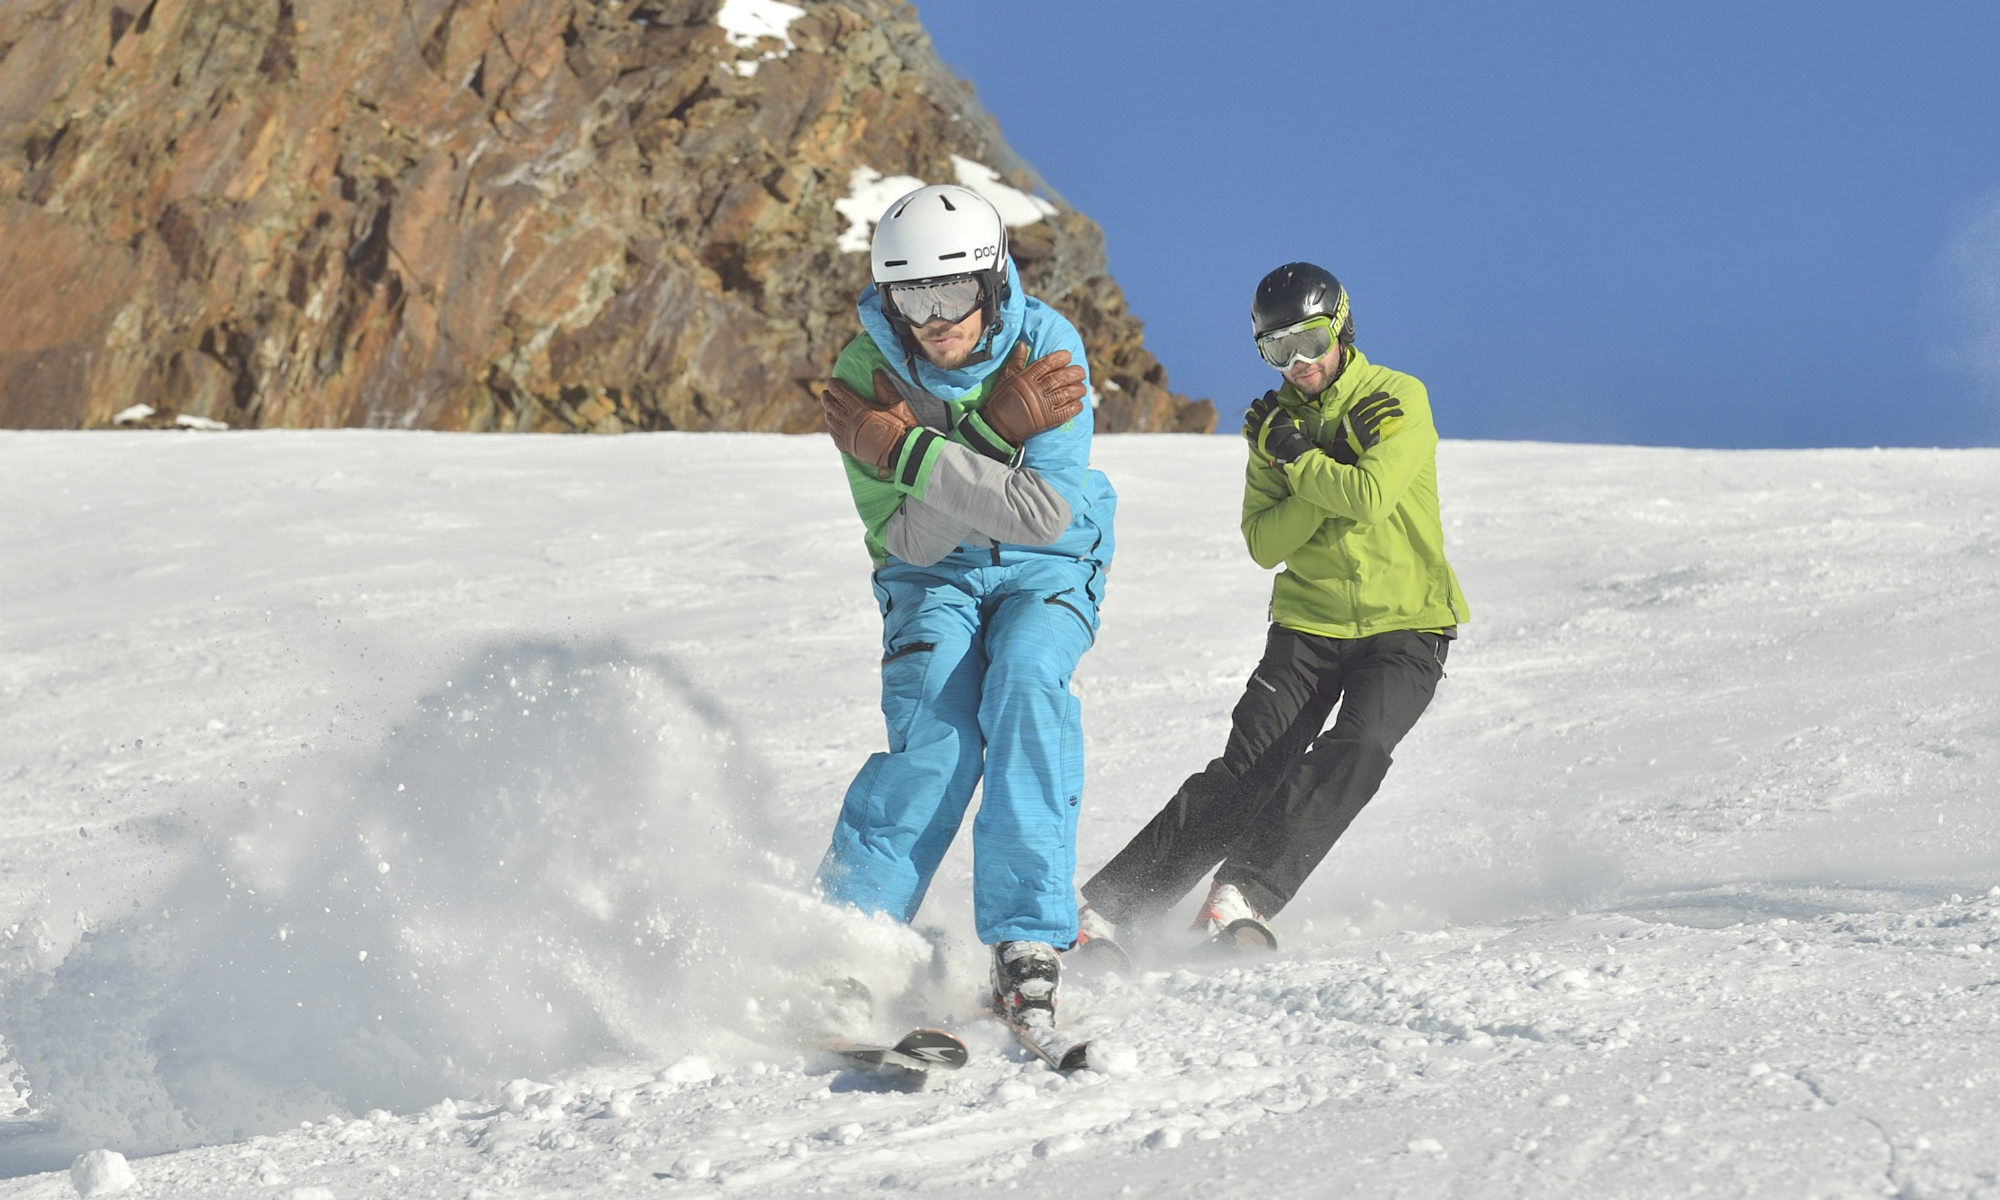 Two skiers practicing their technique on the ski slope.